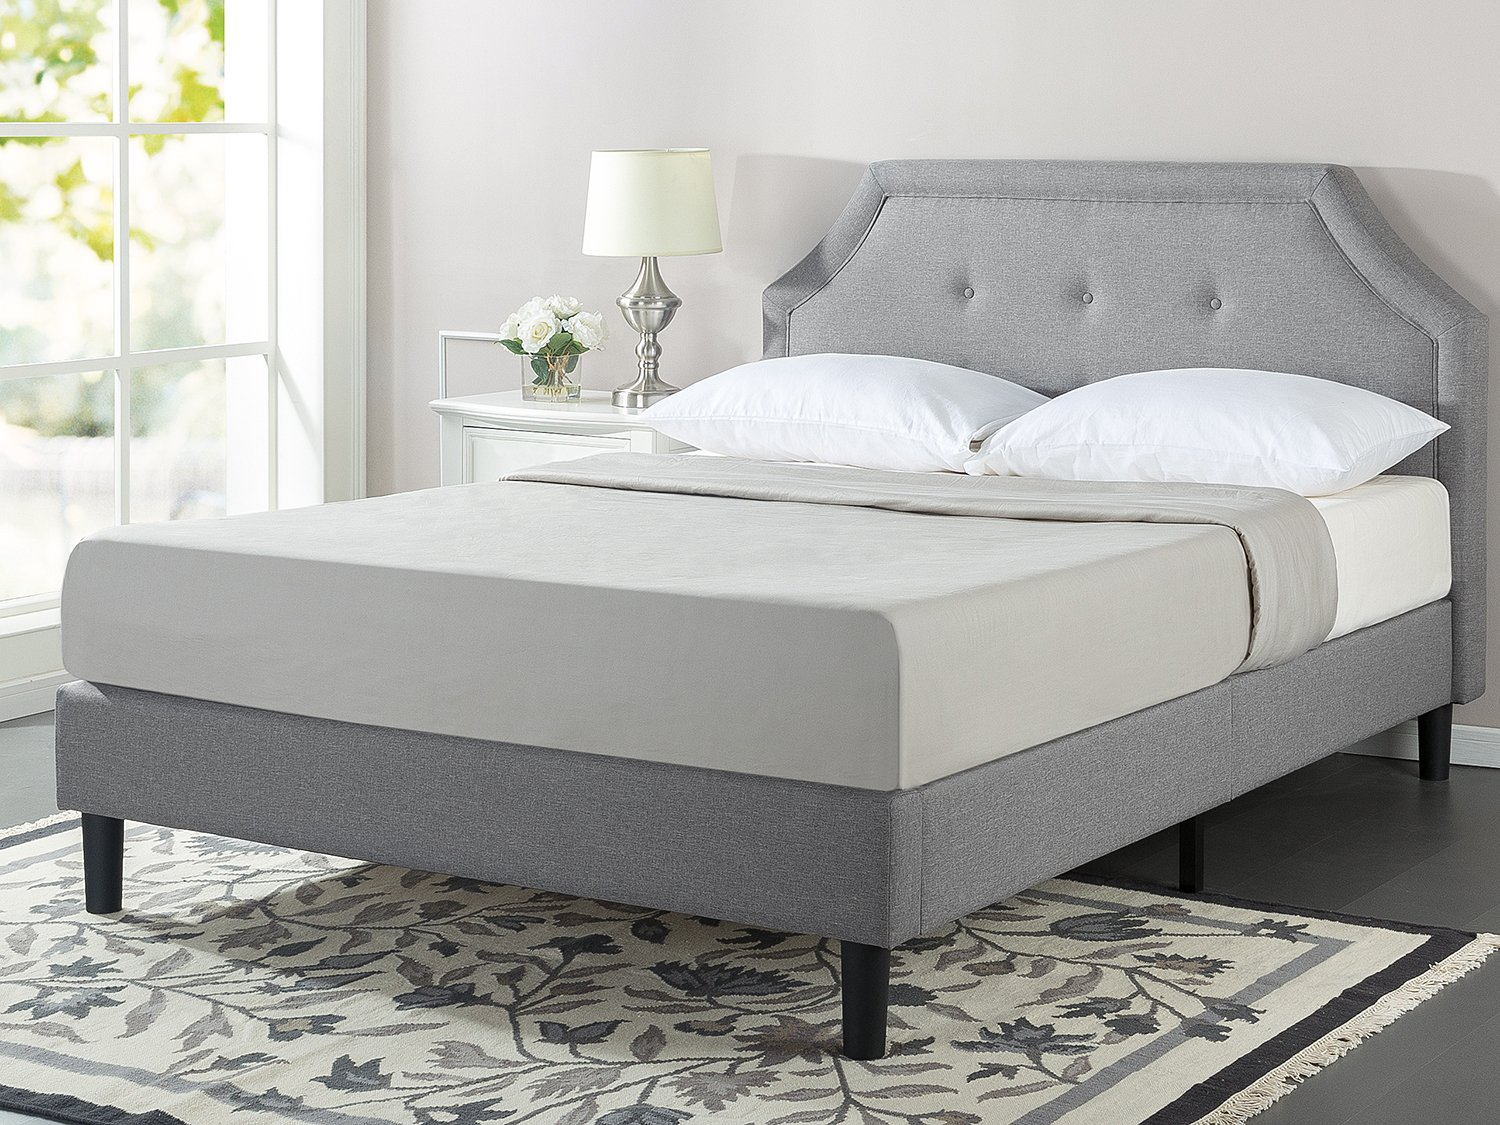 Zinus Lyon Upholstered Button Tufted Platform Bed Mattress Foundation Easy Assembly Strong Wood Slat Support, Queen